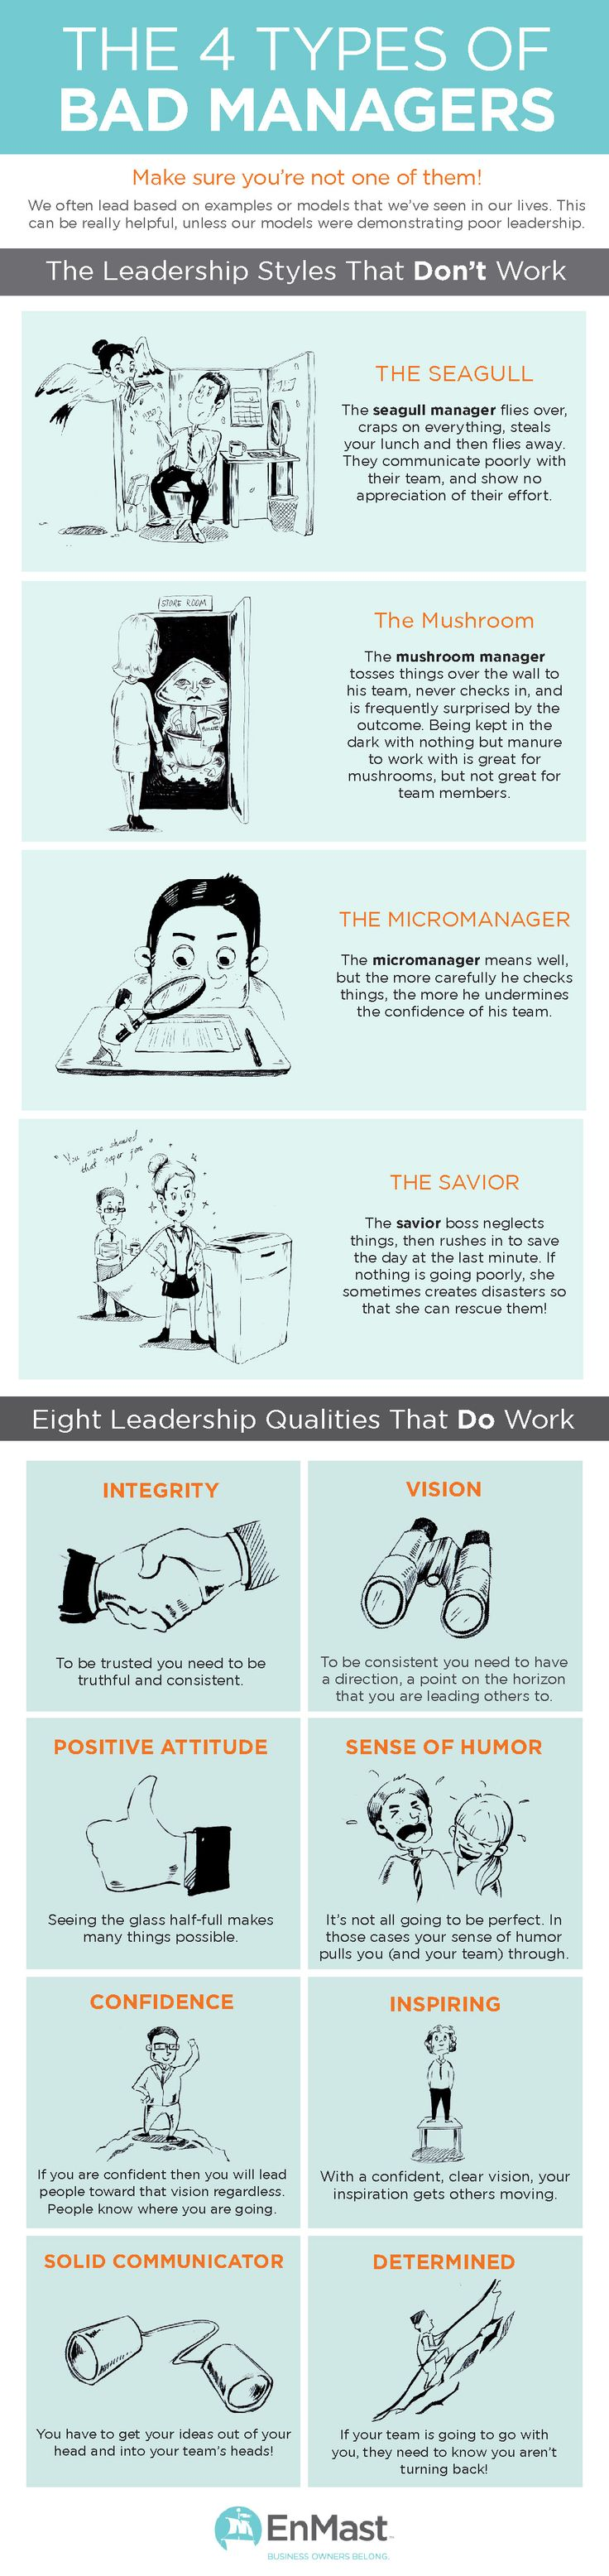 I find these a curious and original way to describe leadership styles. I find this infographic relevant to our class as we have been studying different leadership styles and how we can identify them.